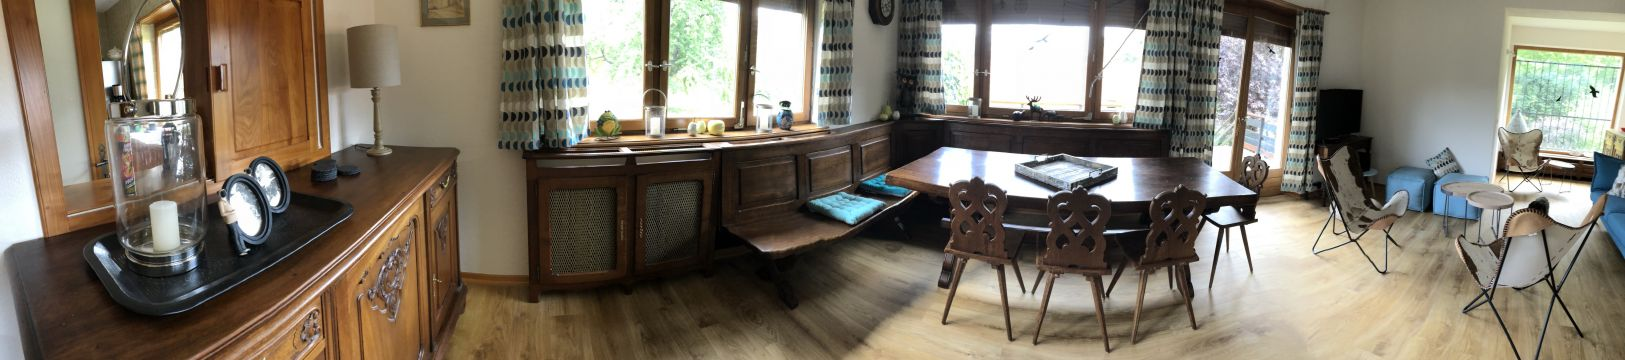 Chalet in Breitenbach - Vacation, holiday rental ad # 65504 Picture #10